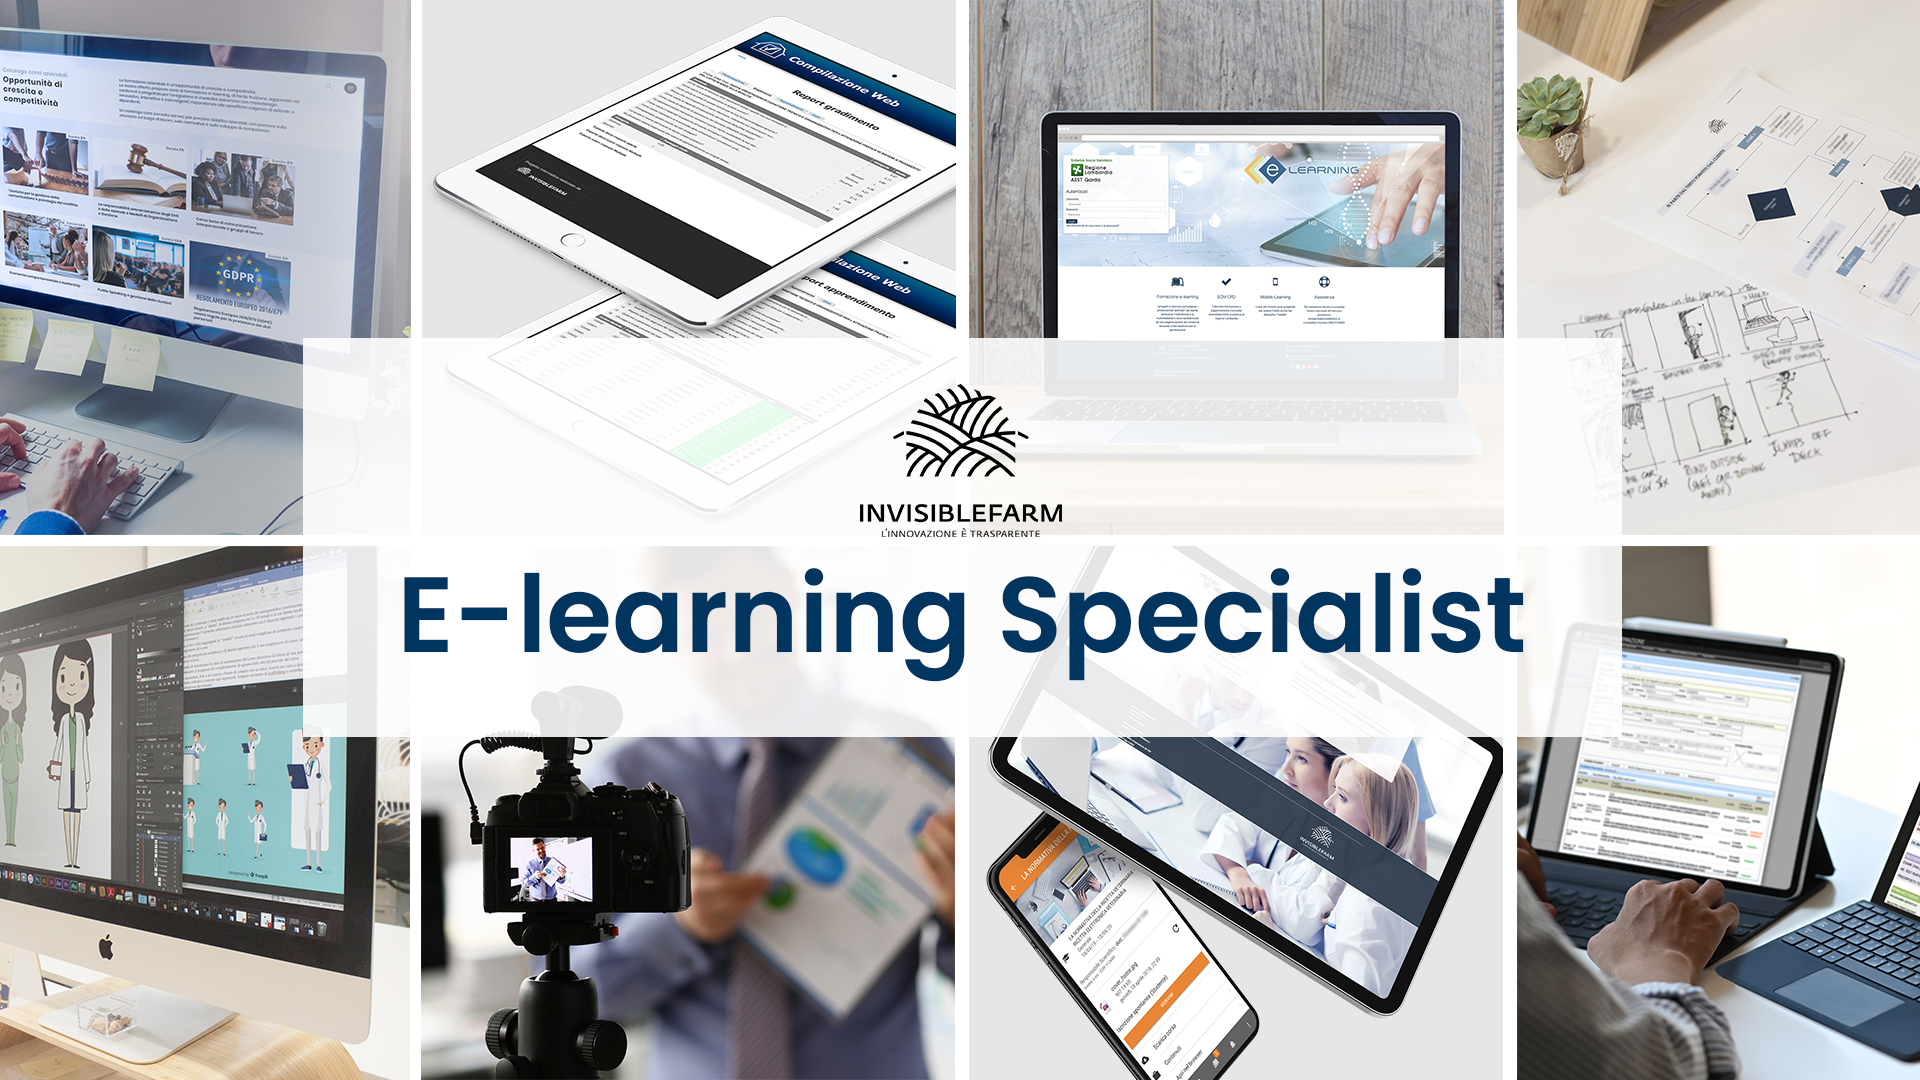 invisiblefarm-e-learning-specialist